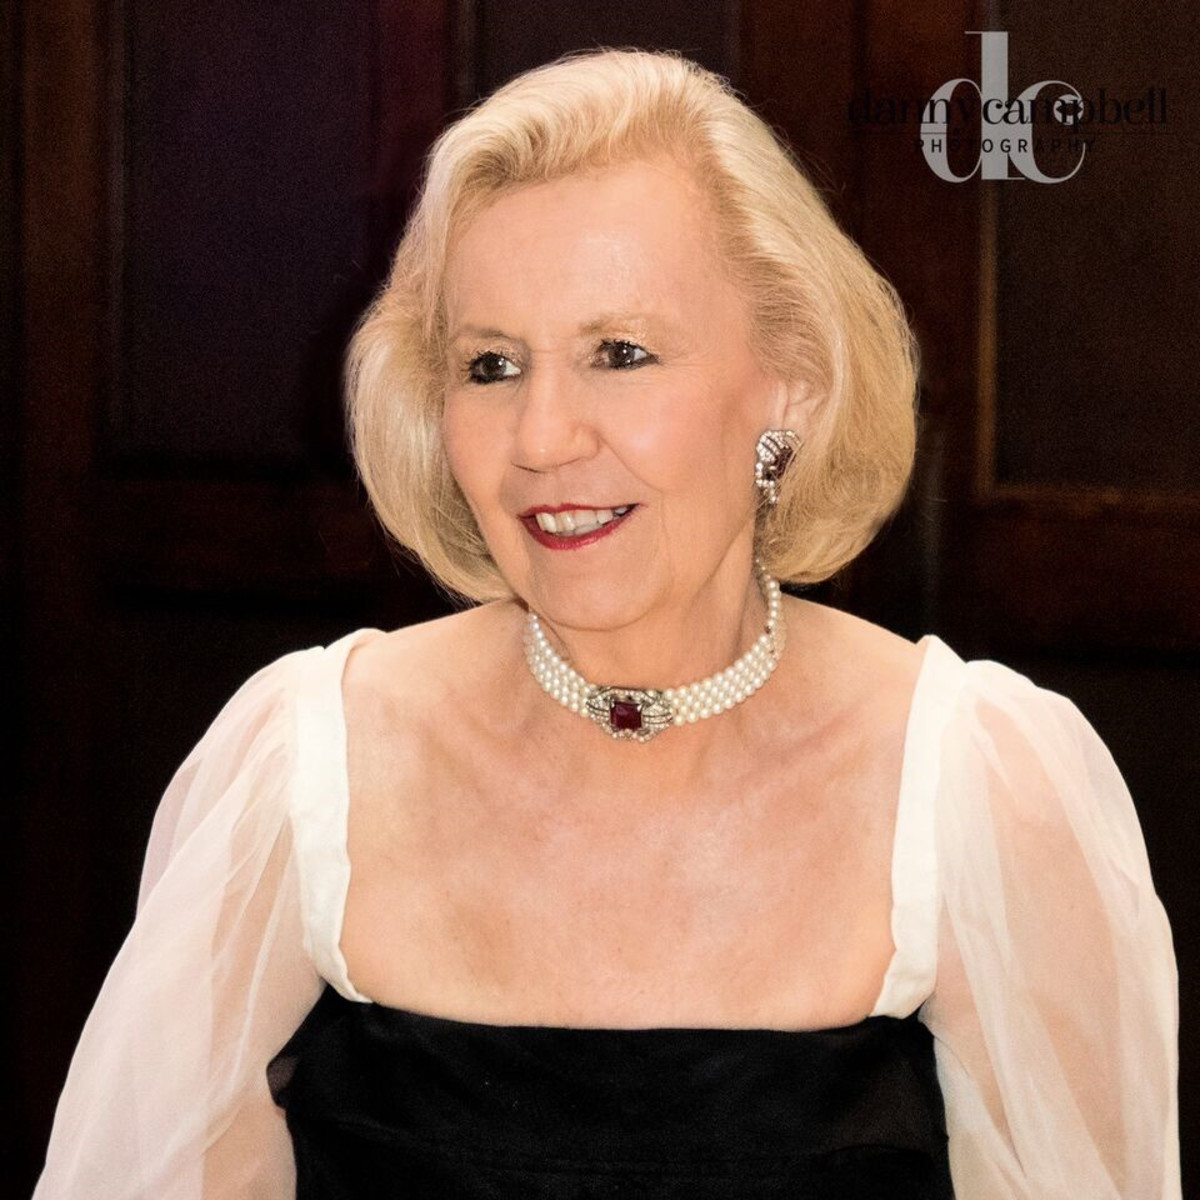 Fashion Stars for a Cause 2018, Yvonne Crum